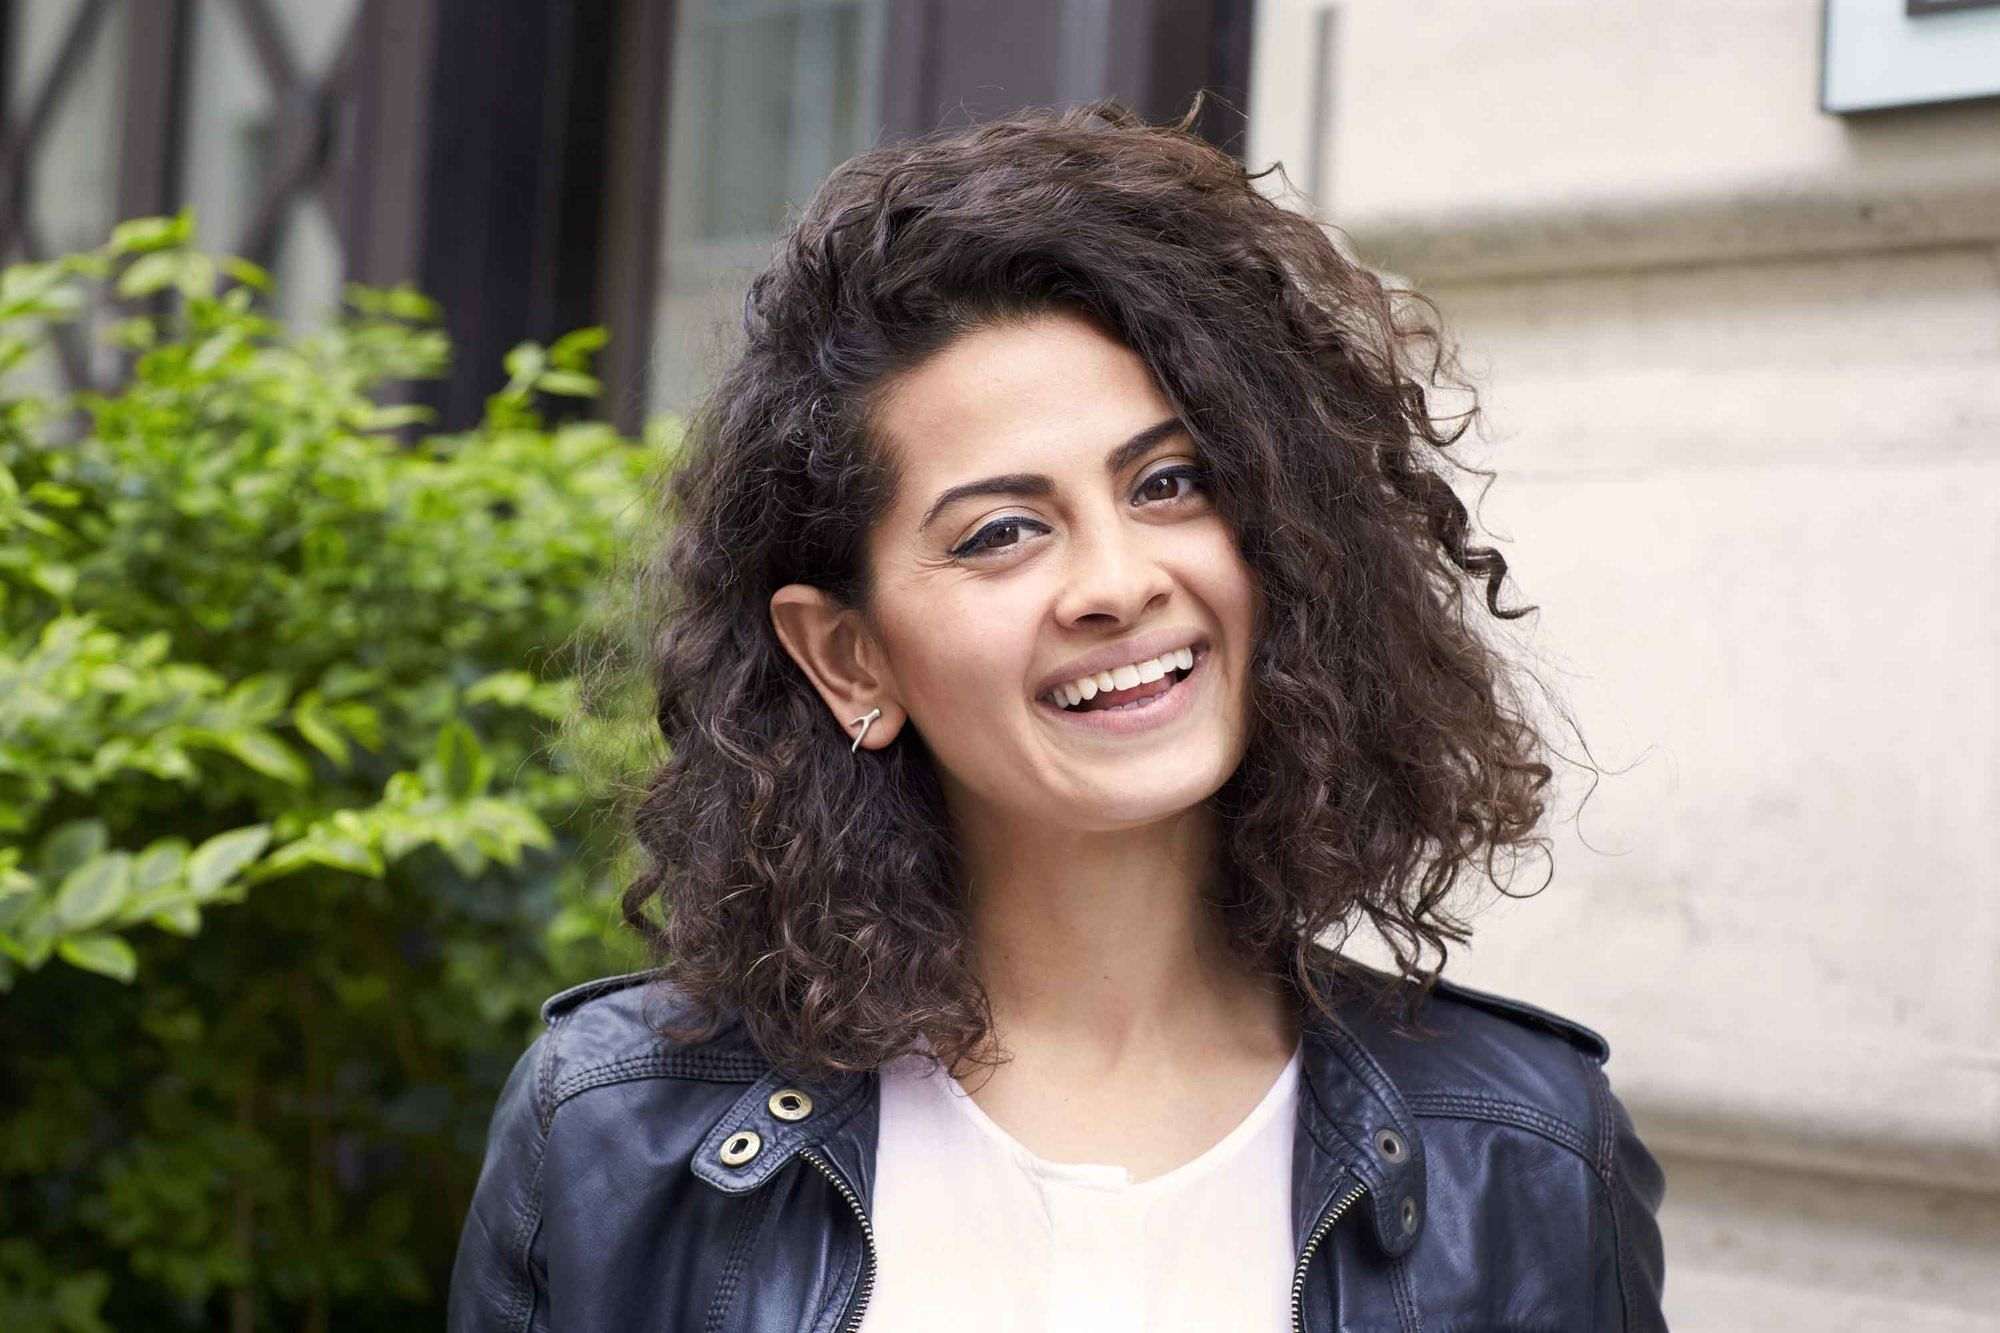 Hair types: Woman with curly shoulder length haircut